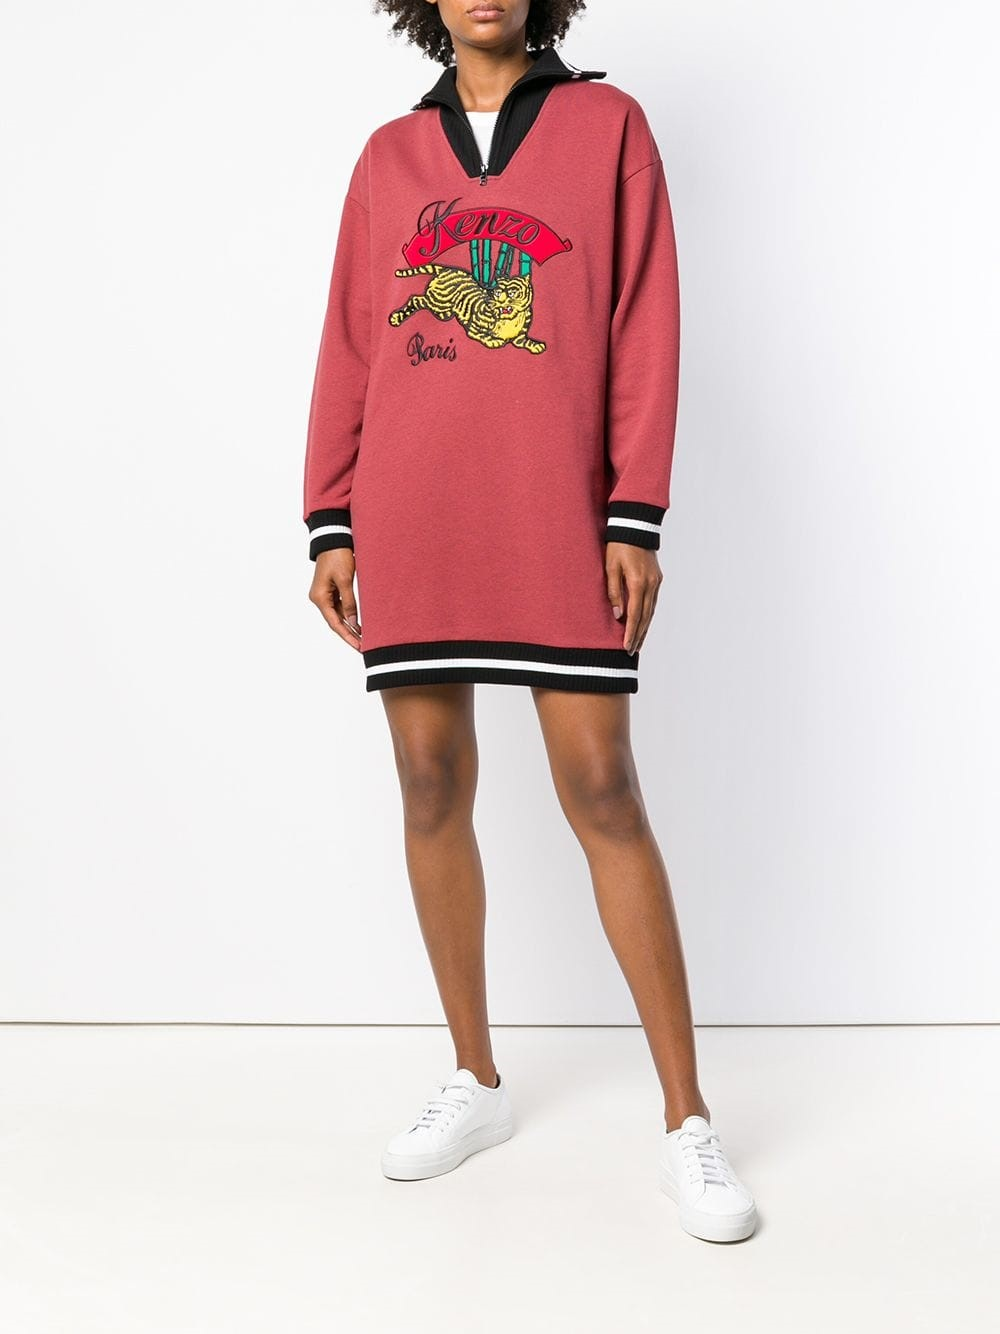 82780a724 kenzo EMBROIDERED TIGER DRESS available on montiboutique.com - 24848